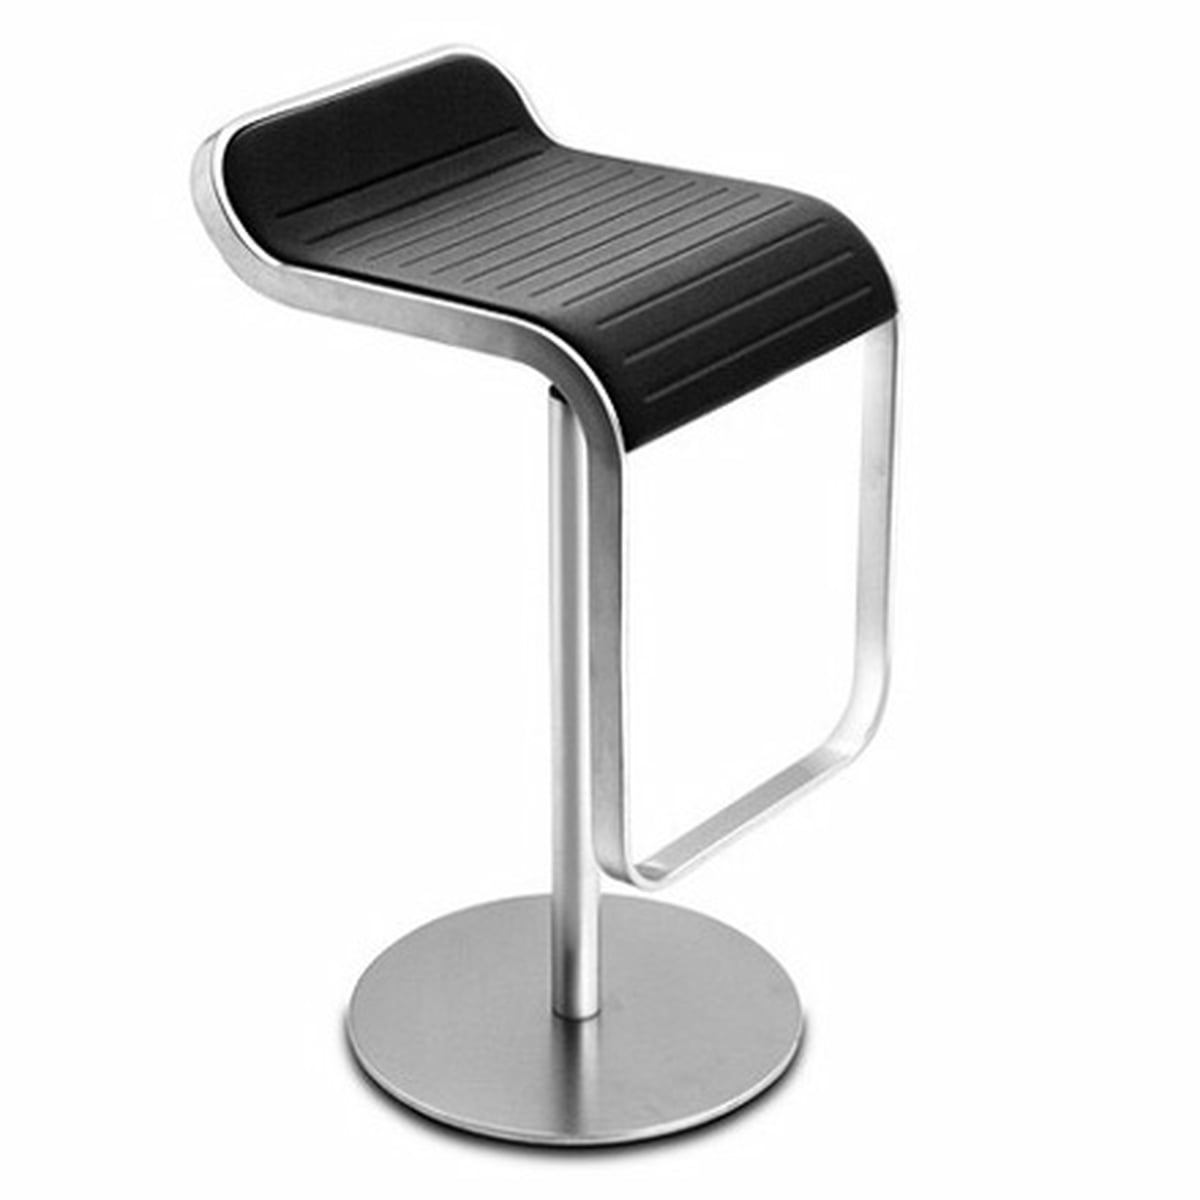 Lem Barstool By Lapalma In Our Interior Design Shop